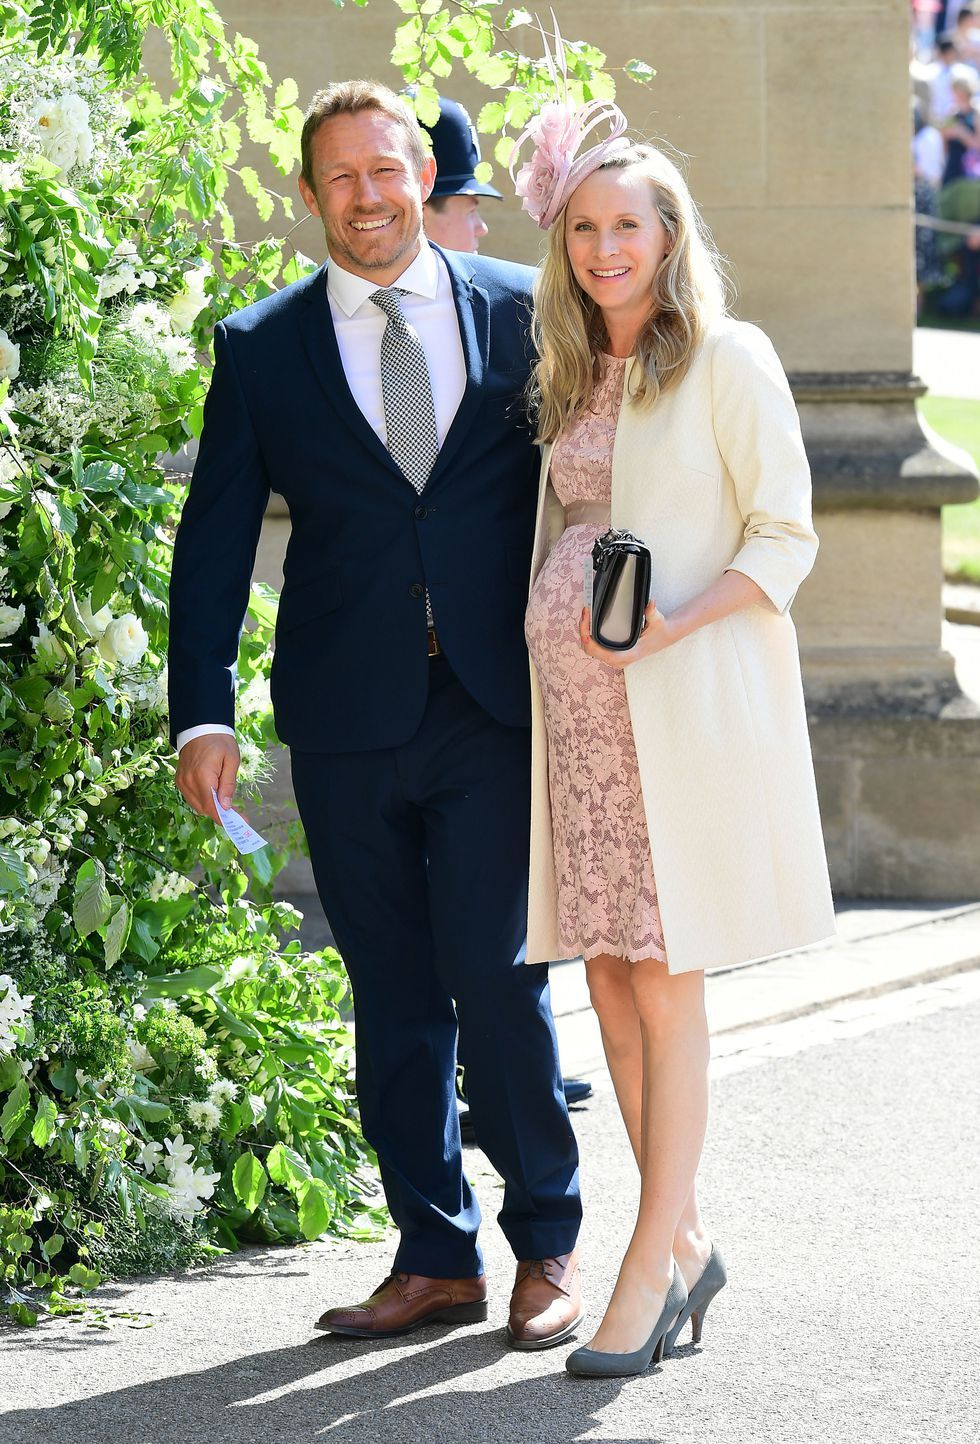 Celebrities At Royal Wedding.All The Celebrities At Prince Harry And Meghan Markle S Royal